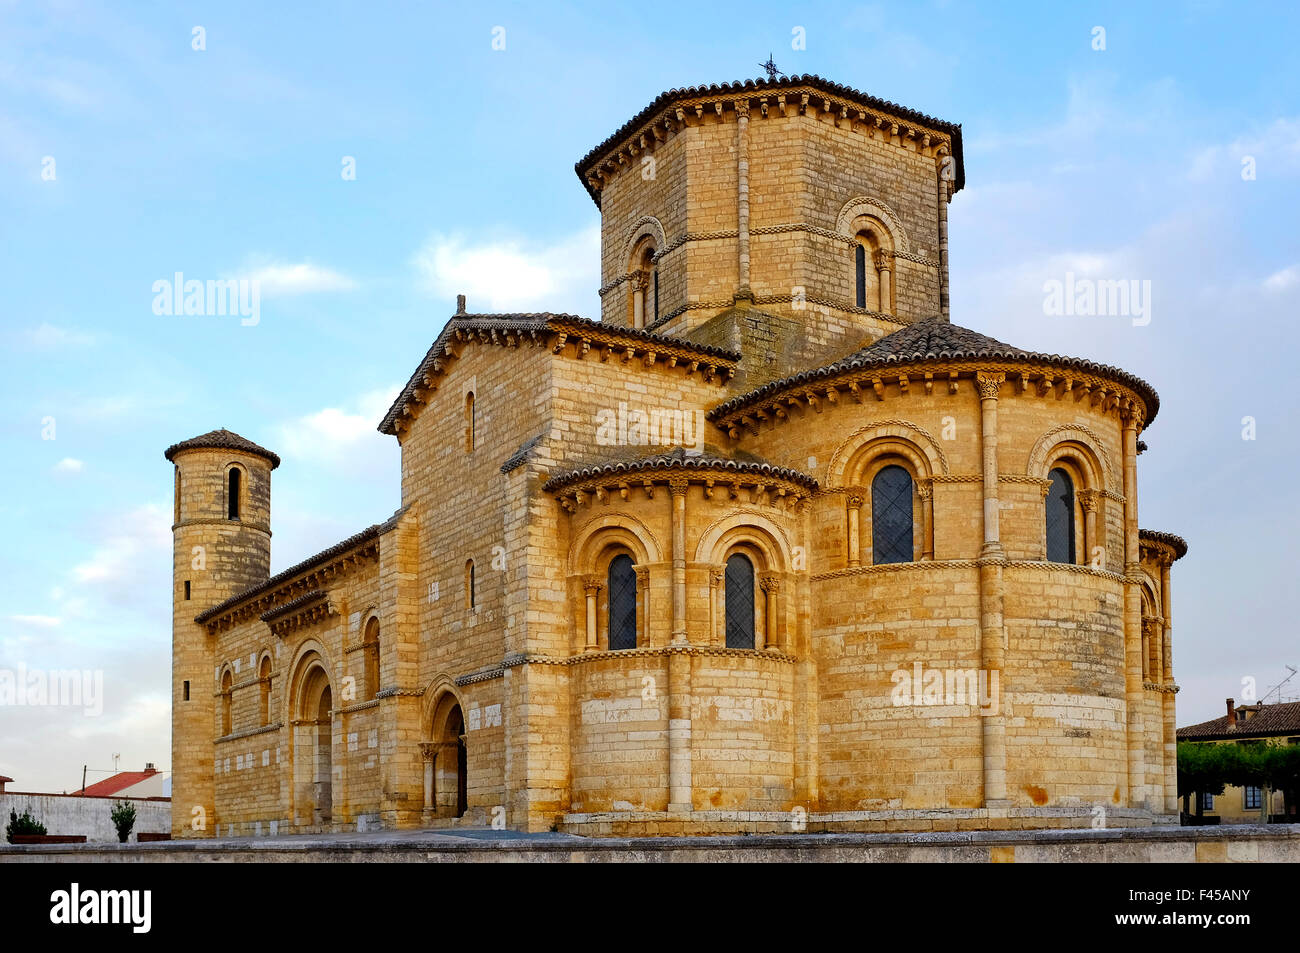 The church of San Martin de Tours in Fromista,Castile and León, Spain - Stock Image